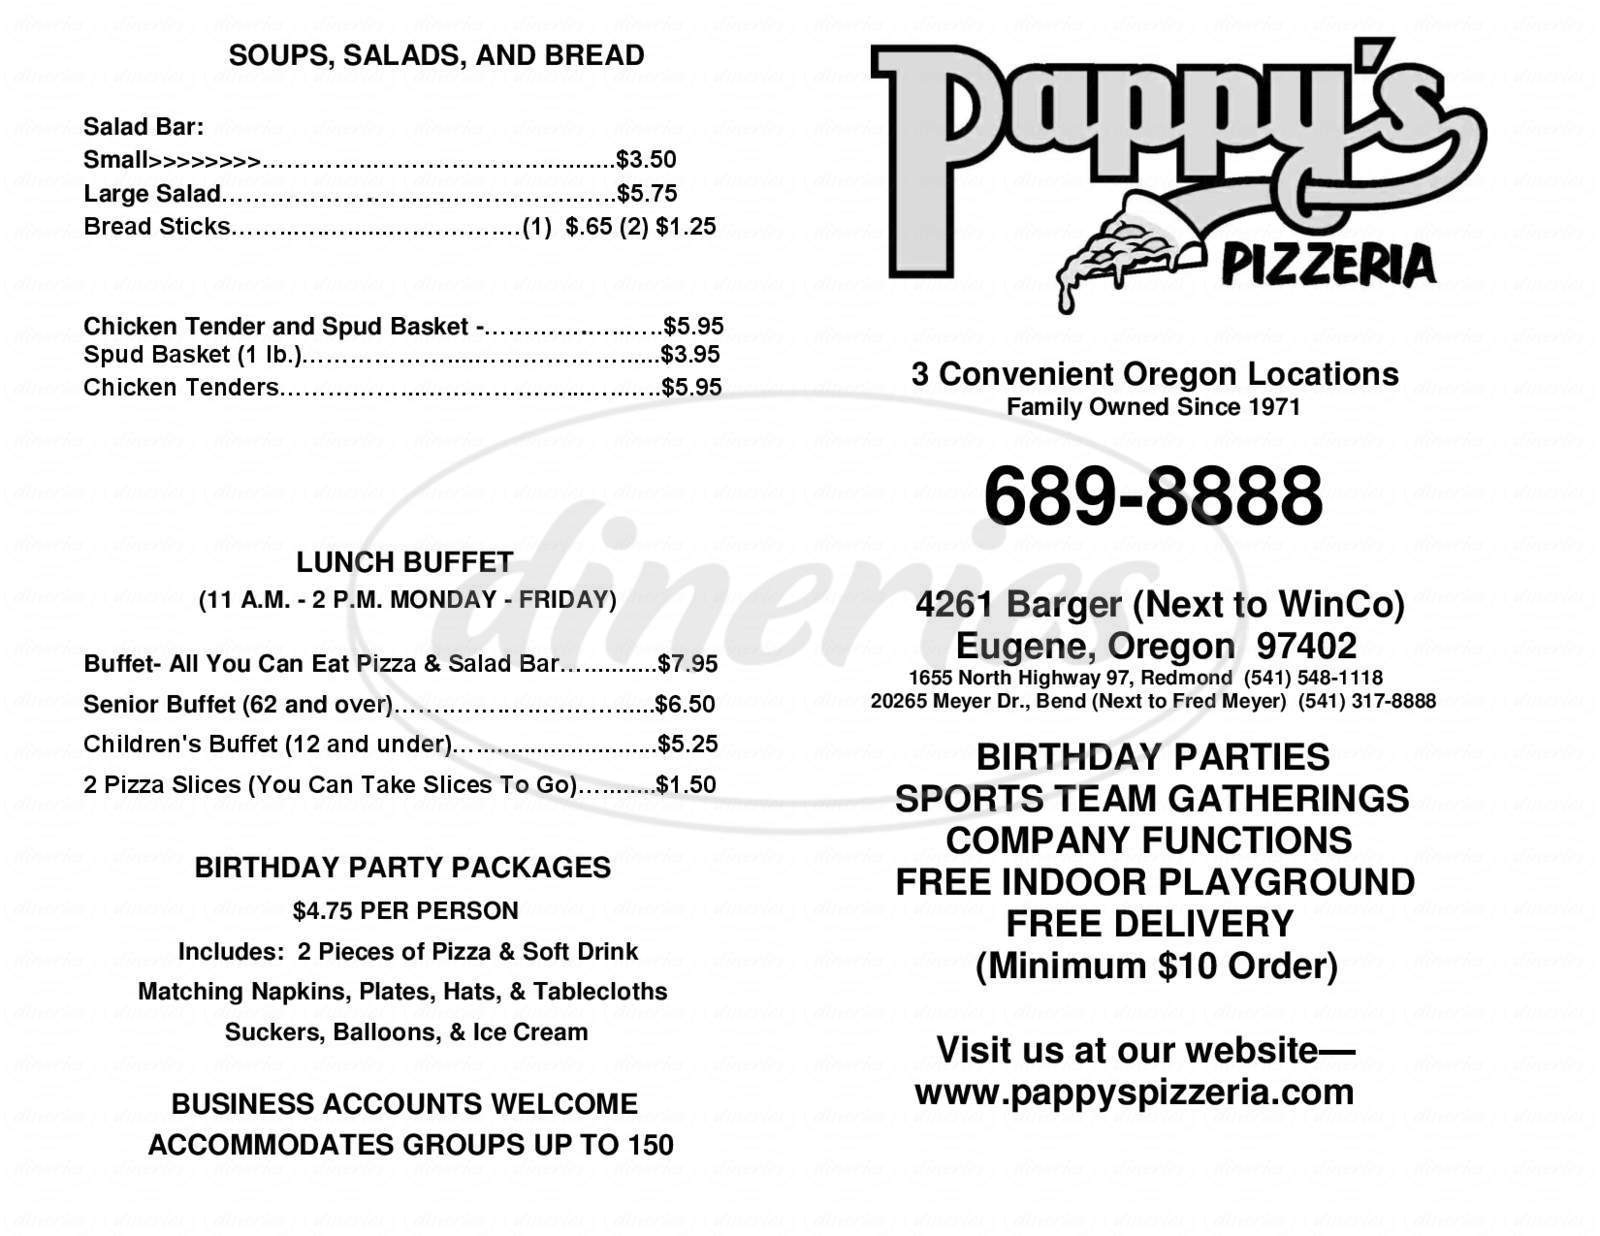 menu for Pappy's Pizzeria